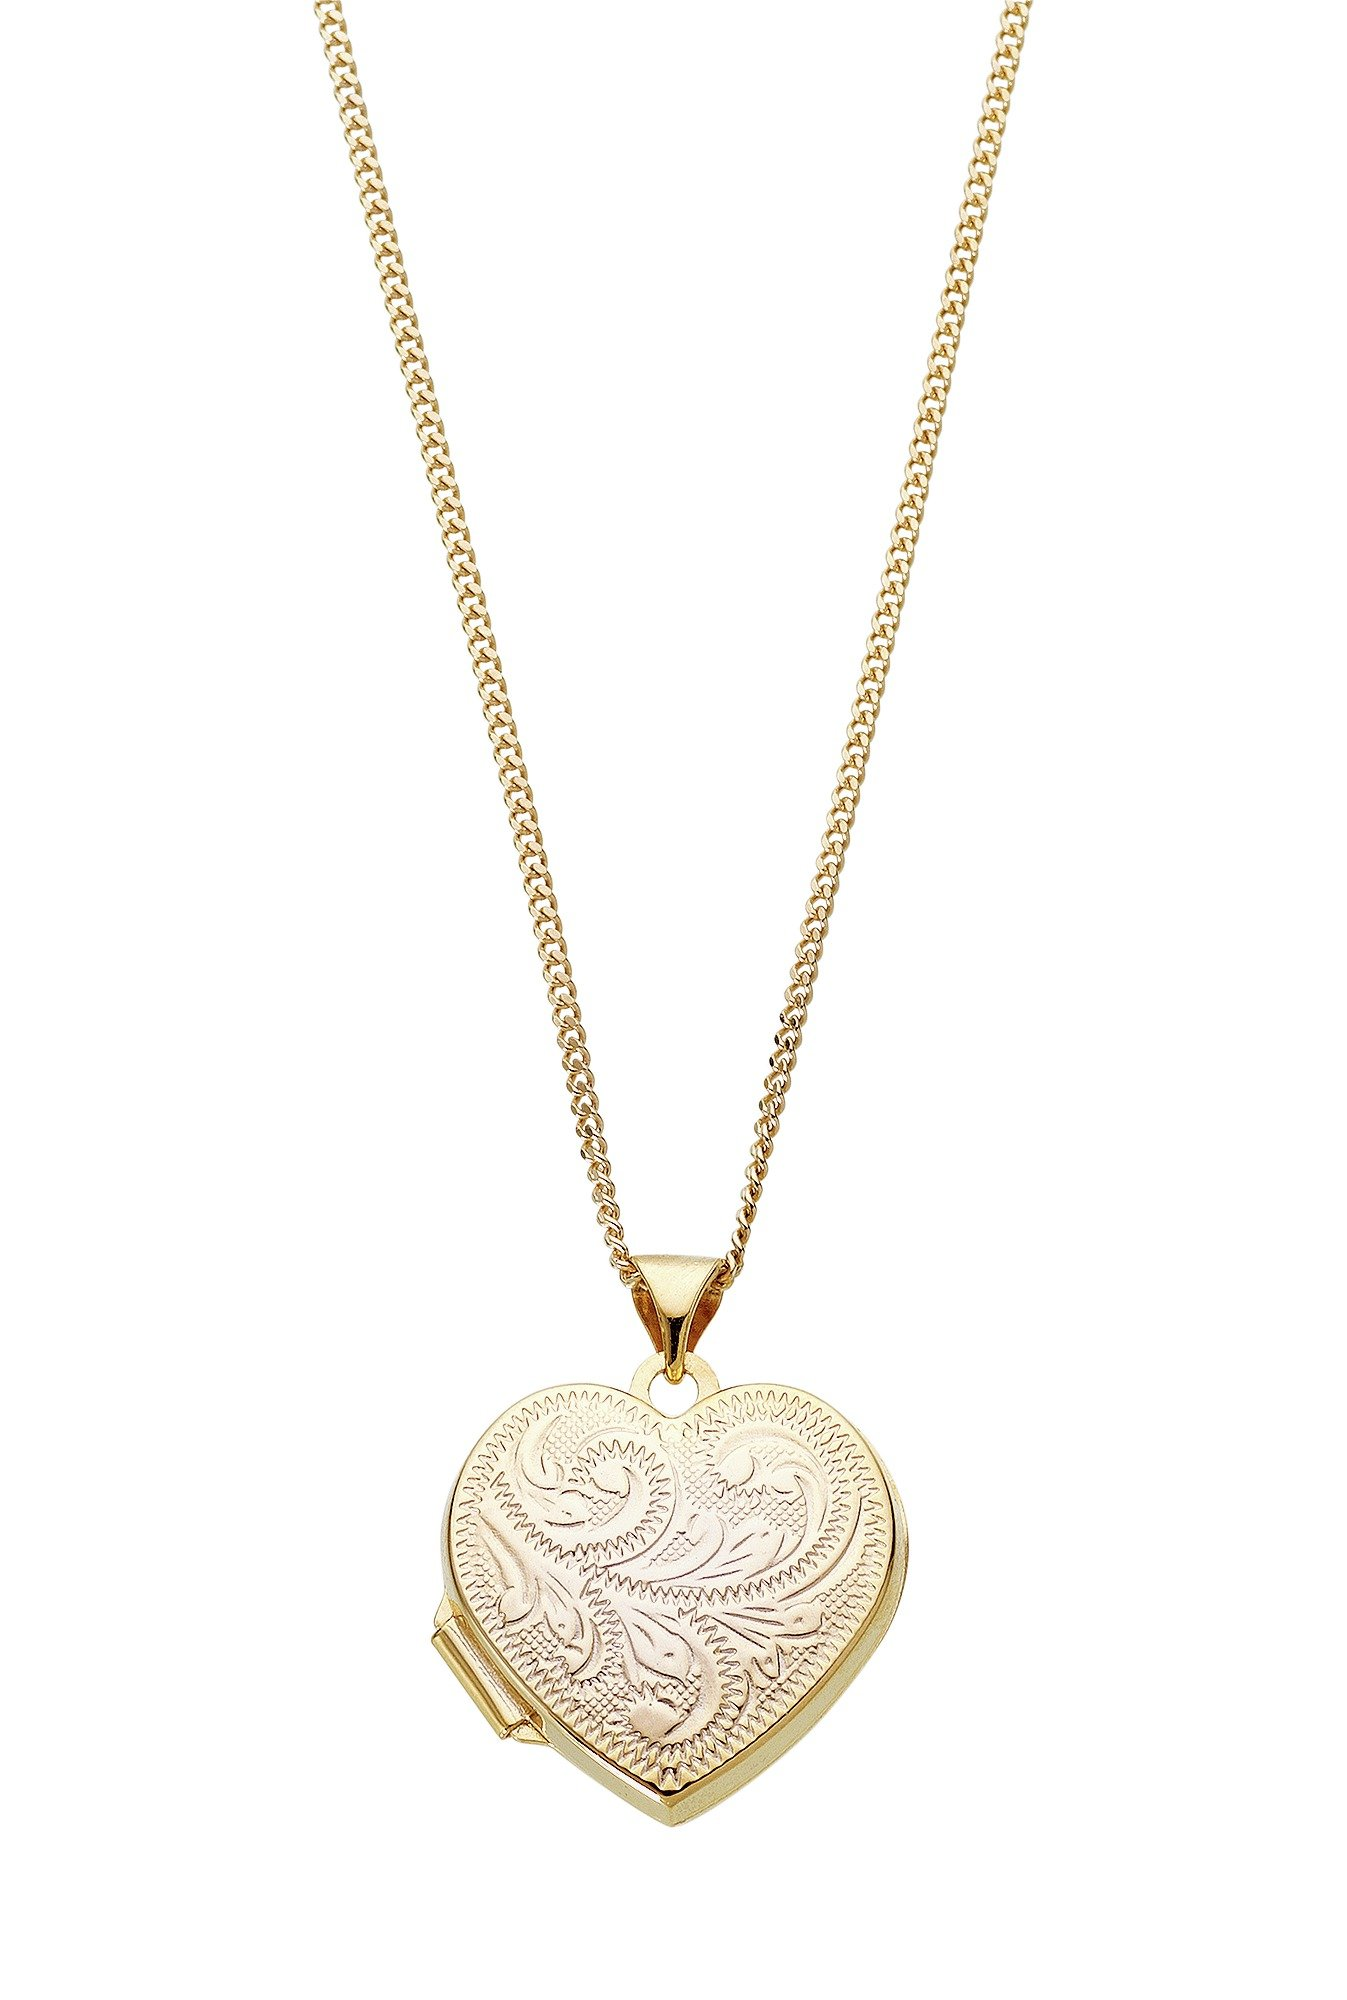 Moon & Back 9ct Gold Plated Heart Locket  Pendant Necklace